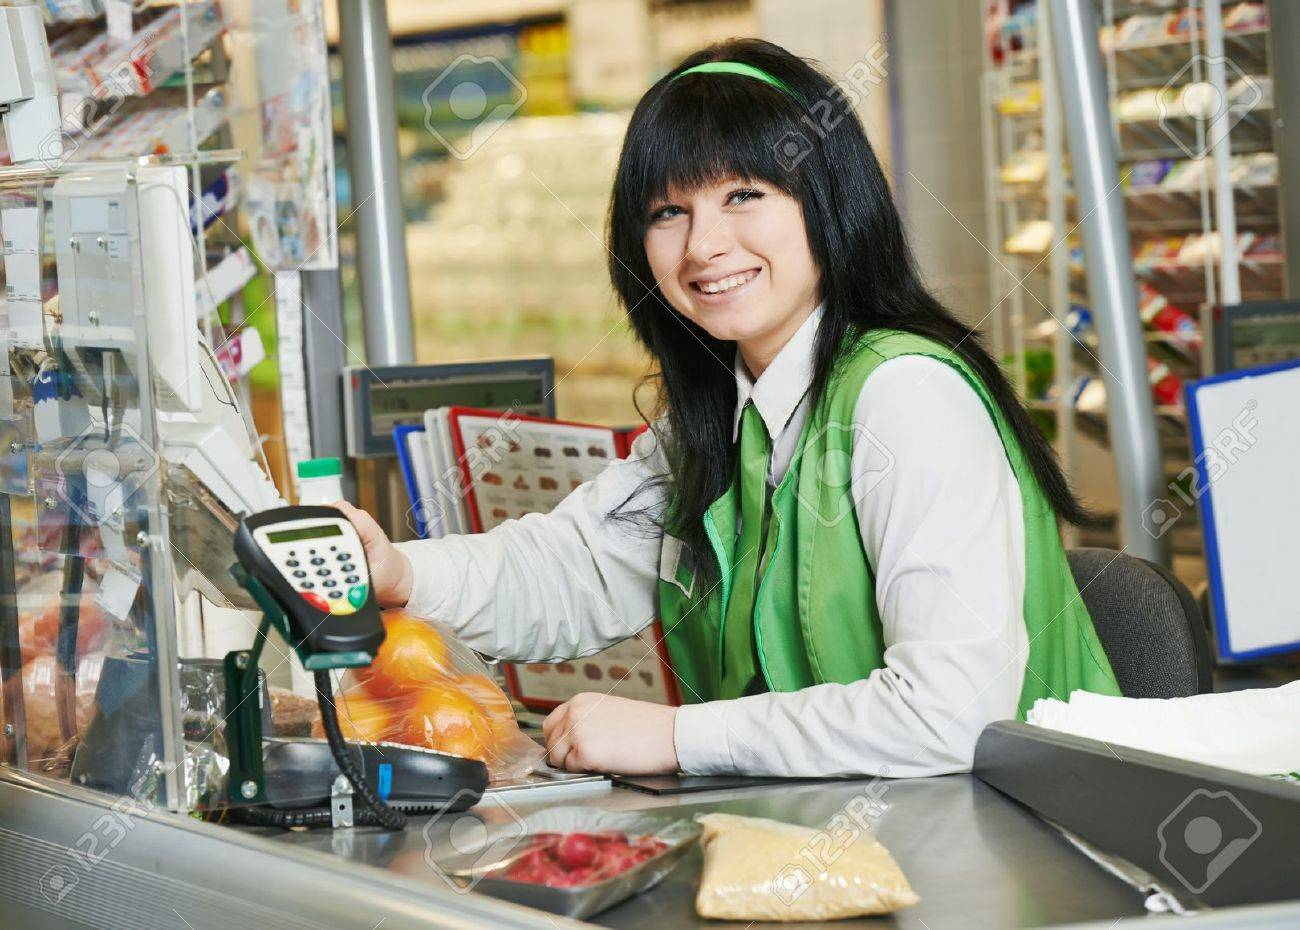 portrait of s assistant or cashdesk worker in supermarket portrait of s assistant or cashdesk worker in supermarket store stock photo 27914042